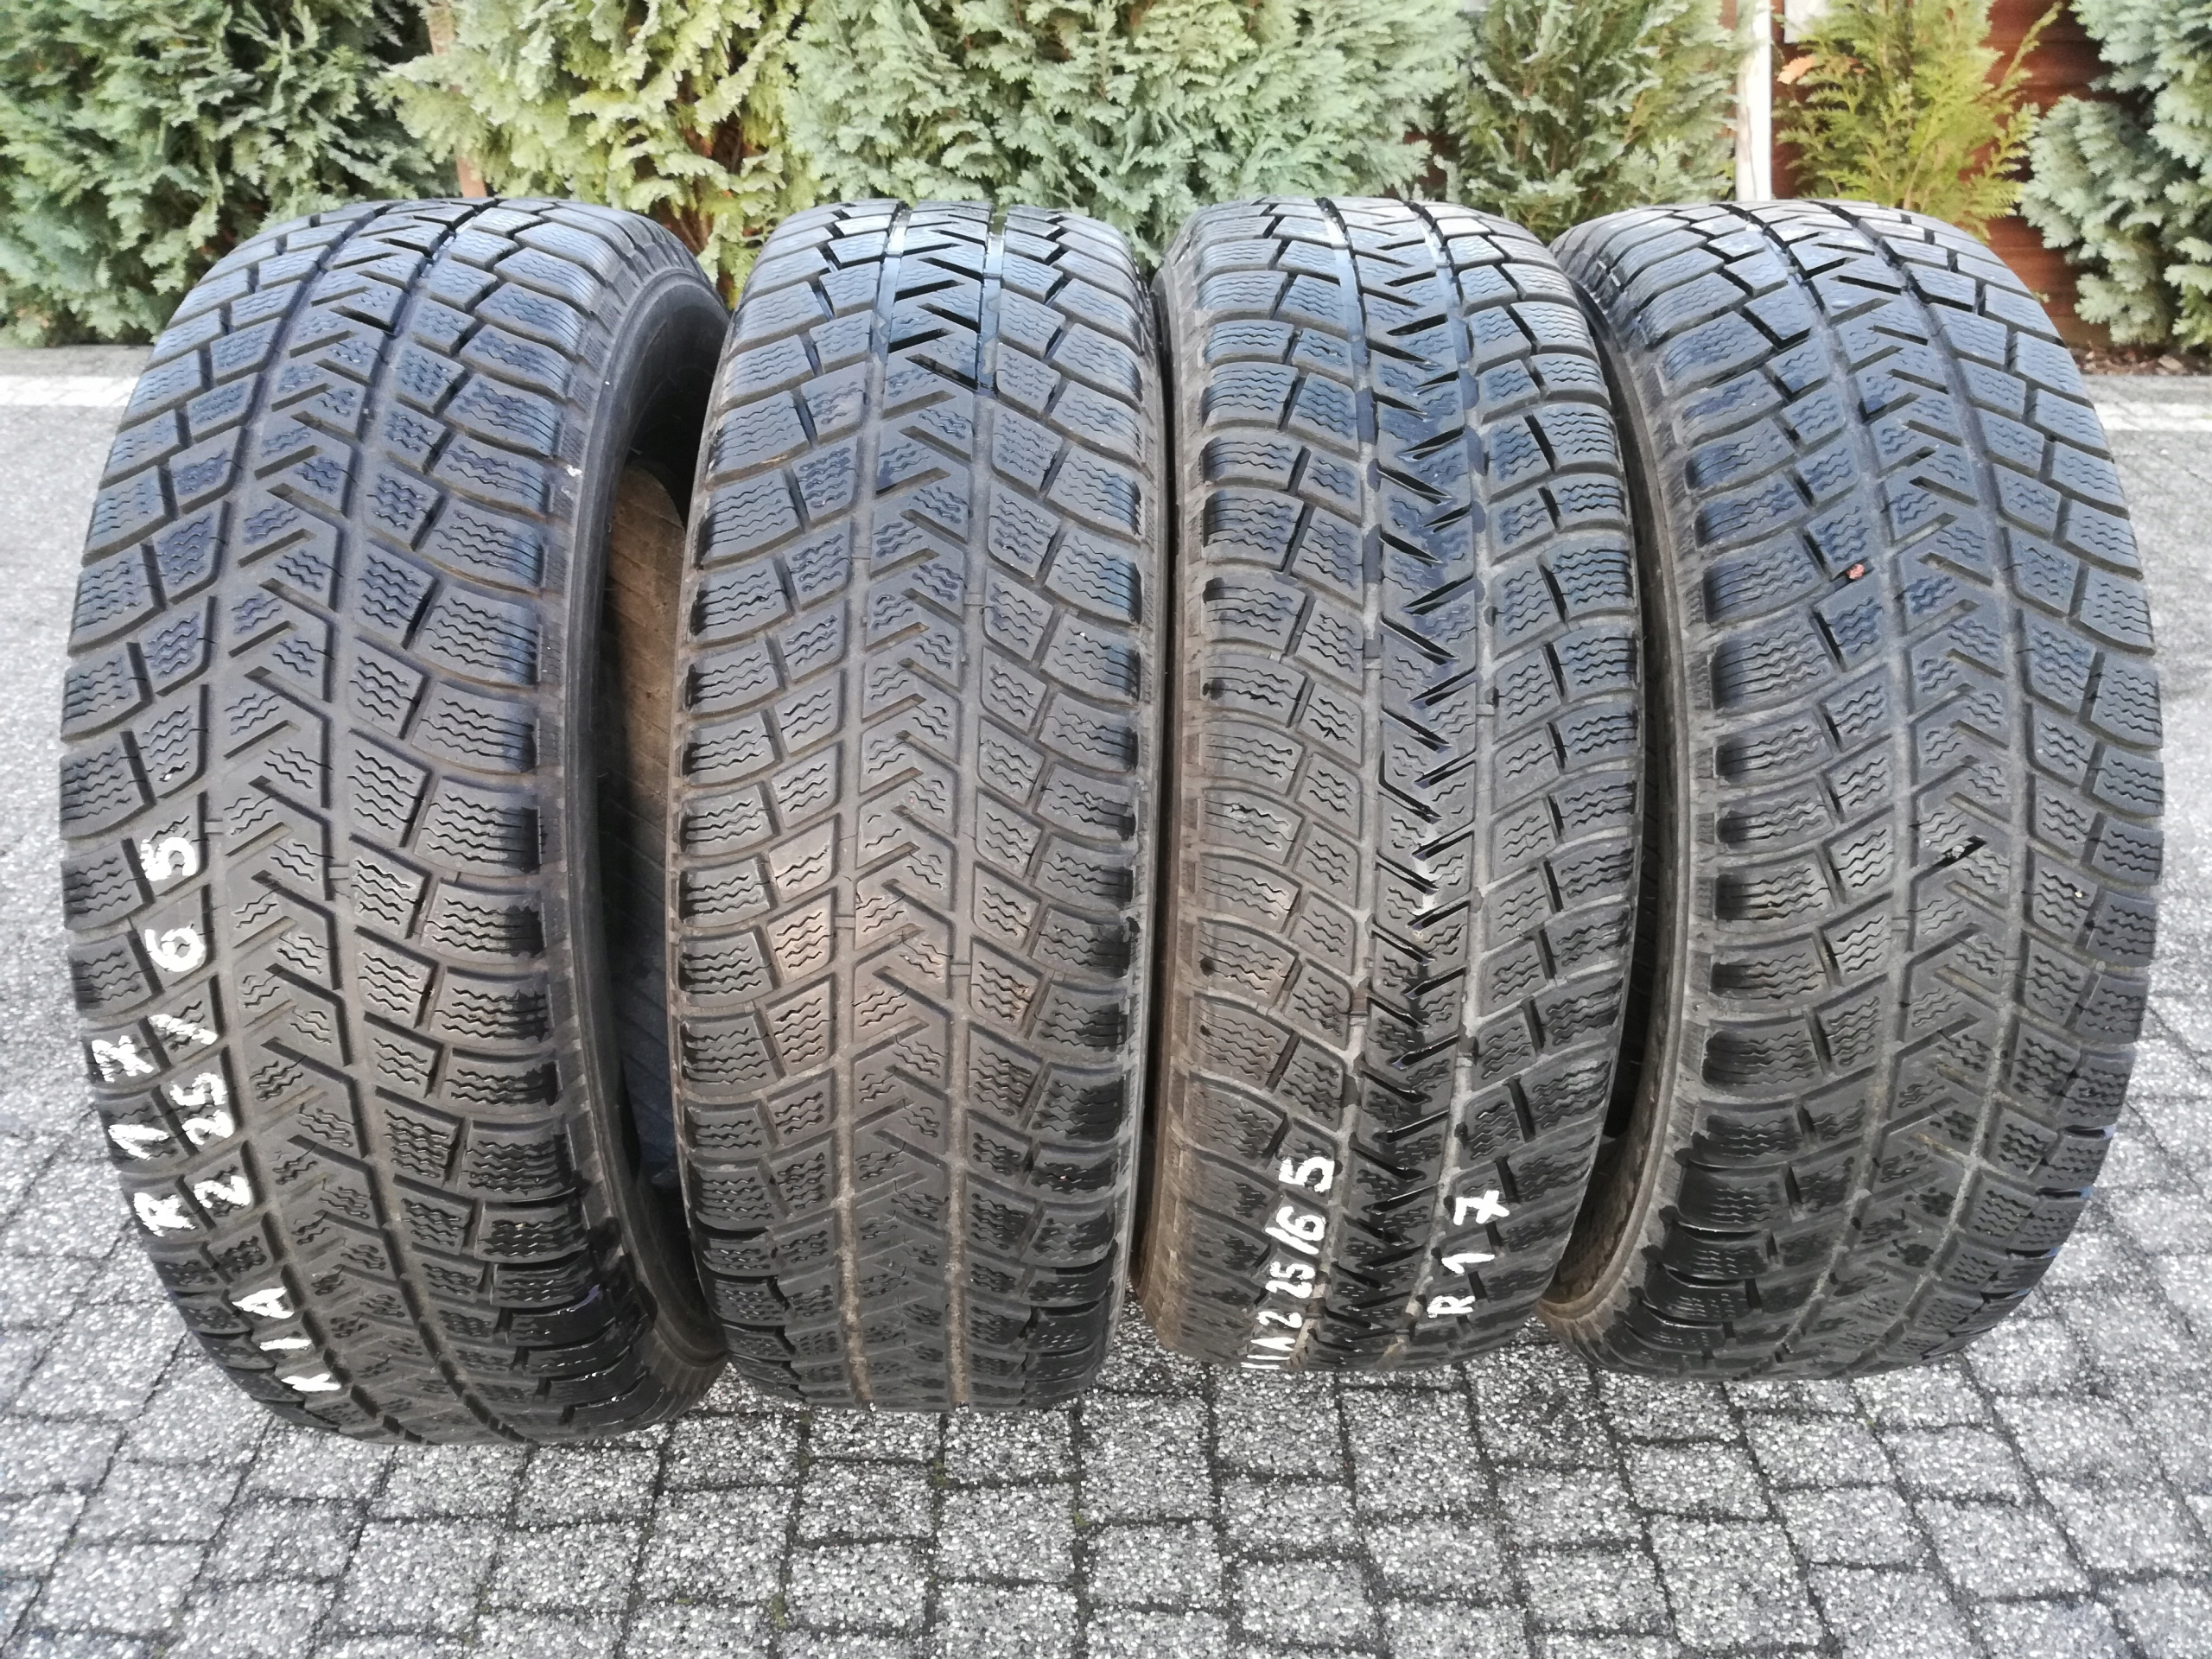 225/65 R17 Michelin Latitude komplet